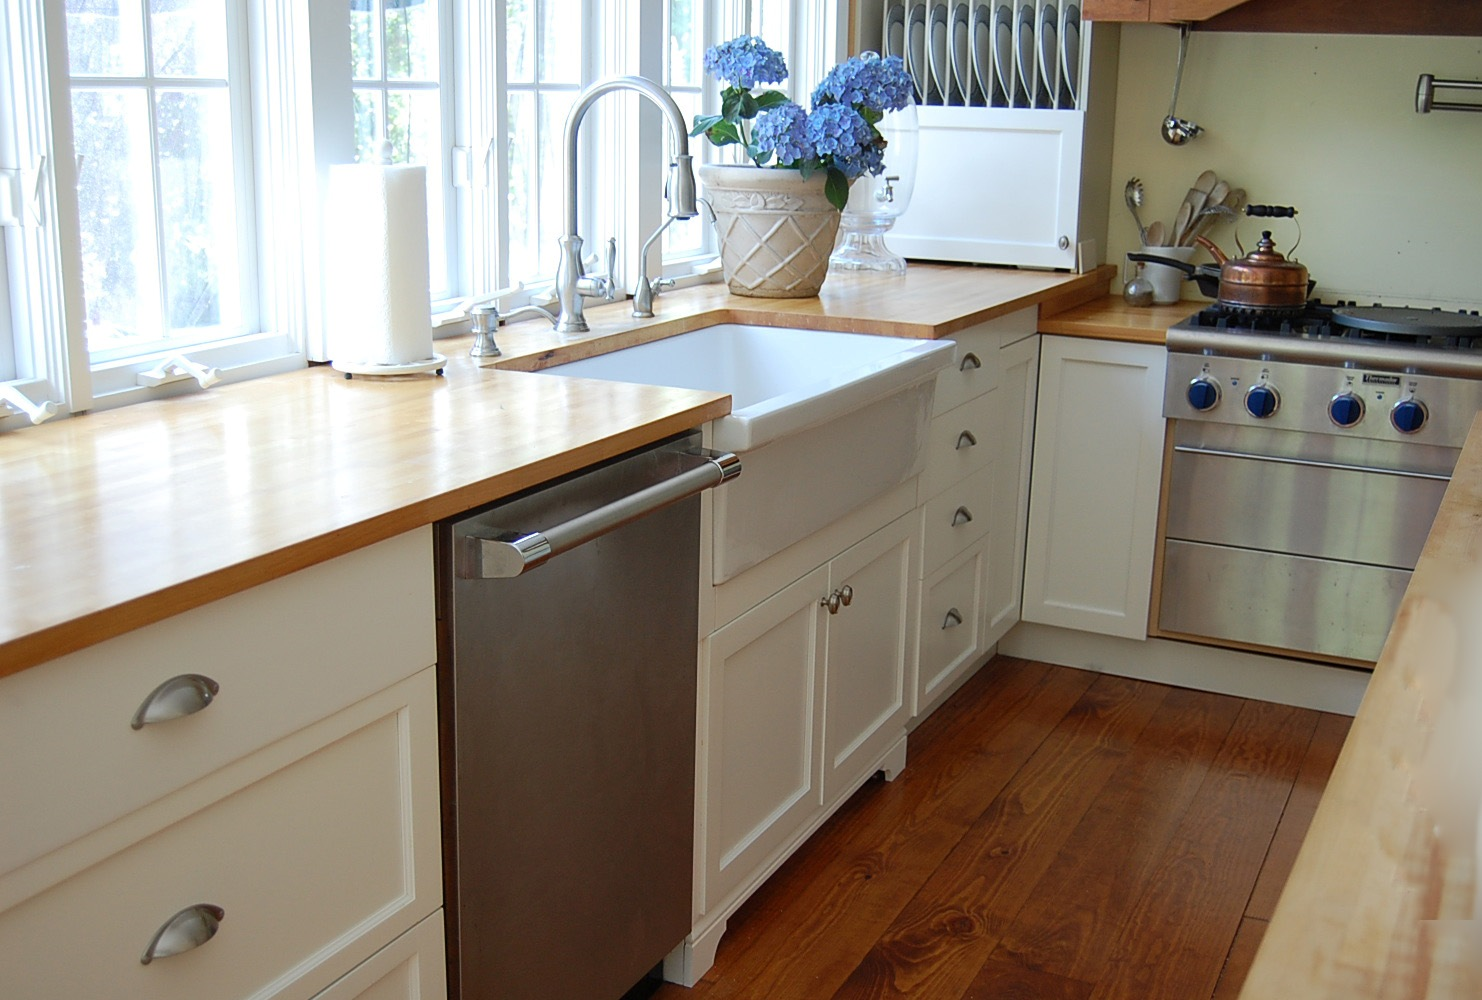 ikea kitchen sink kitchen ideas